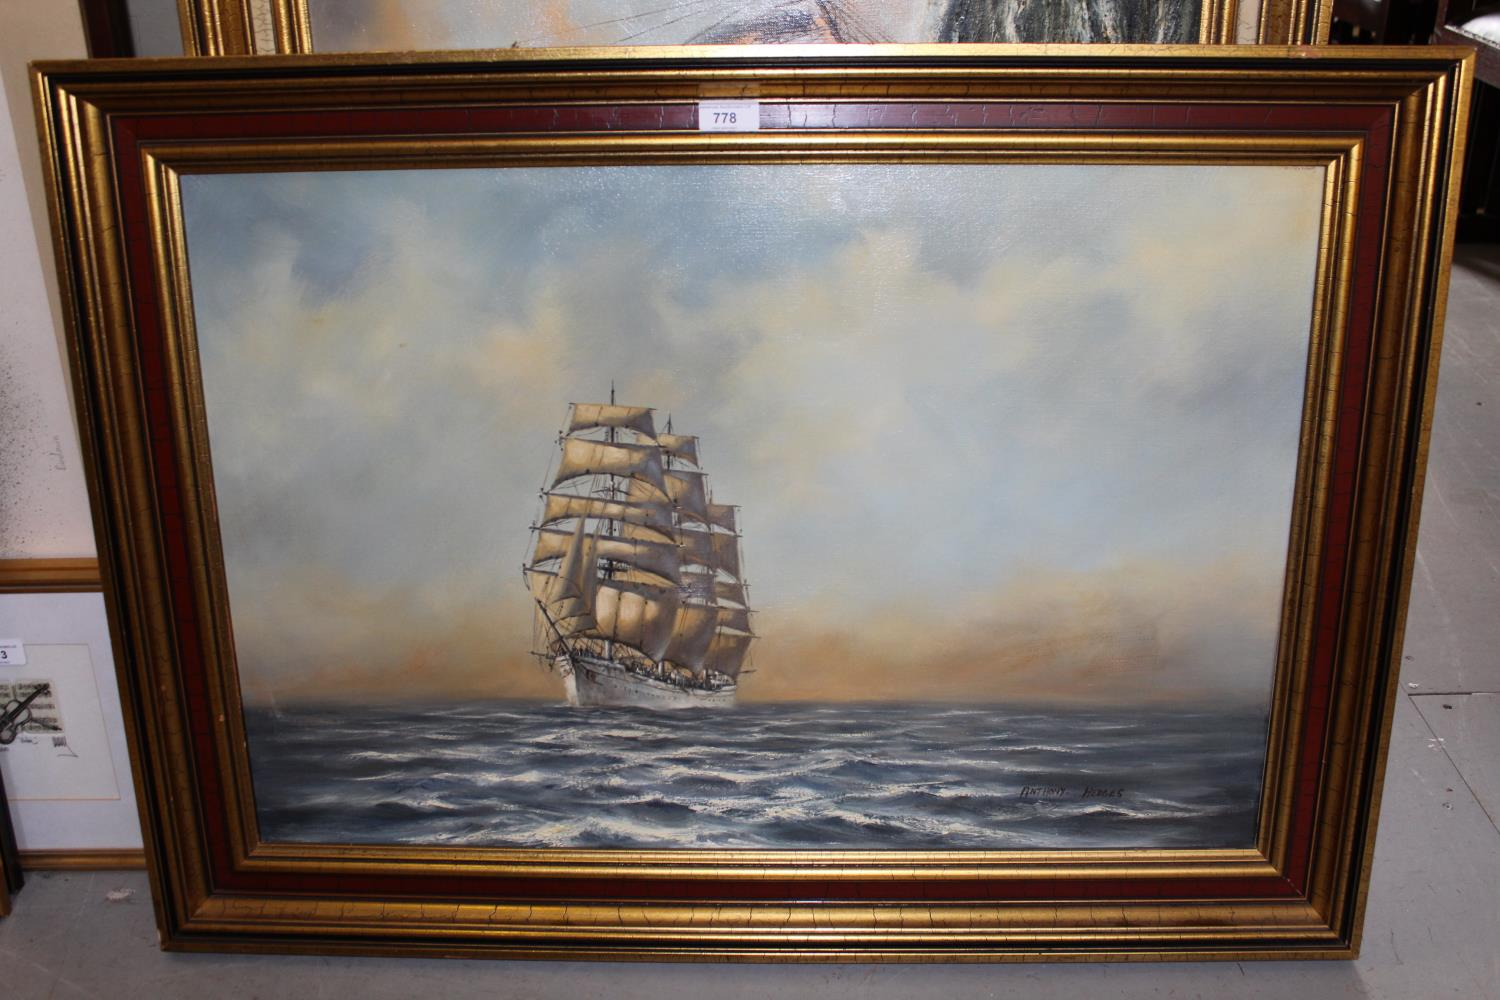 Anthony Hedges, oil on canvas, three masted clipper at sea, signed, 24ins x 36ins, gilt framed